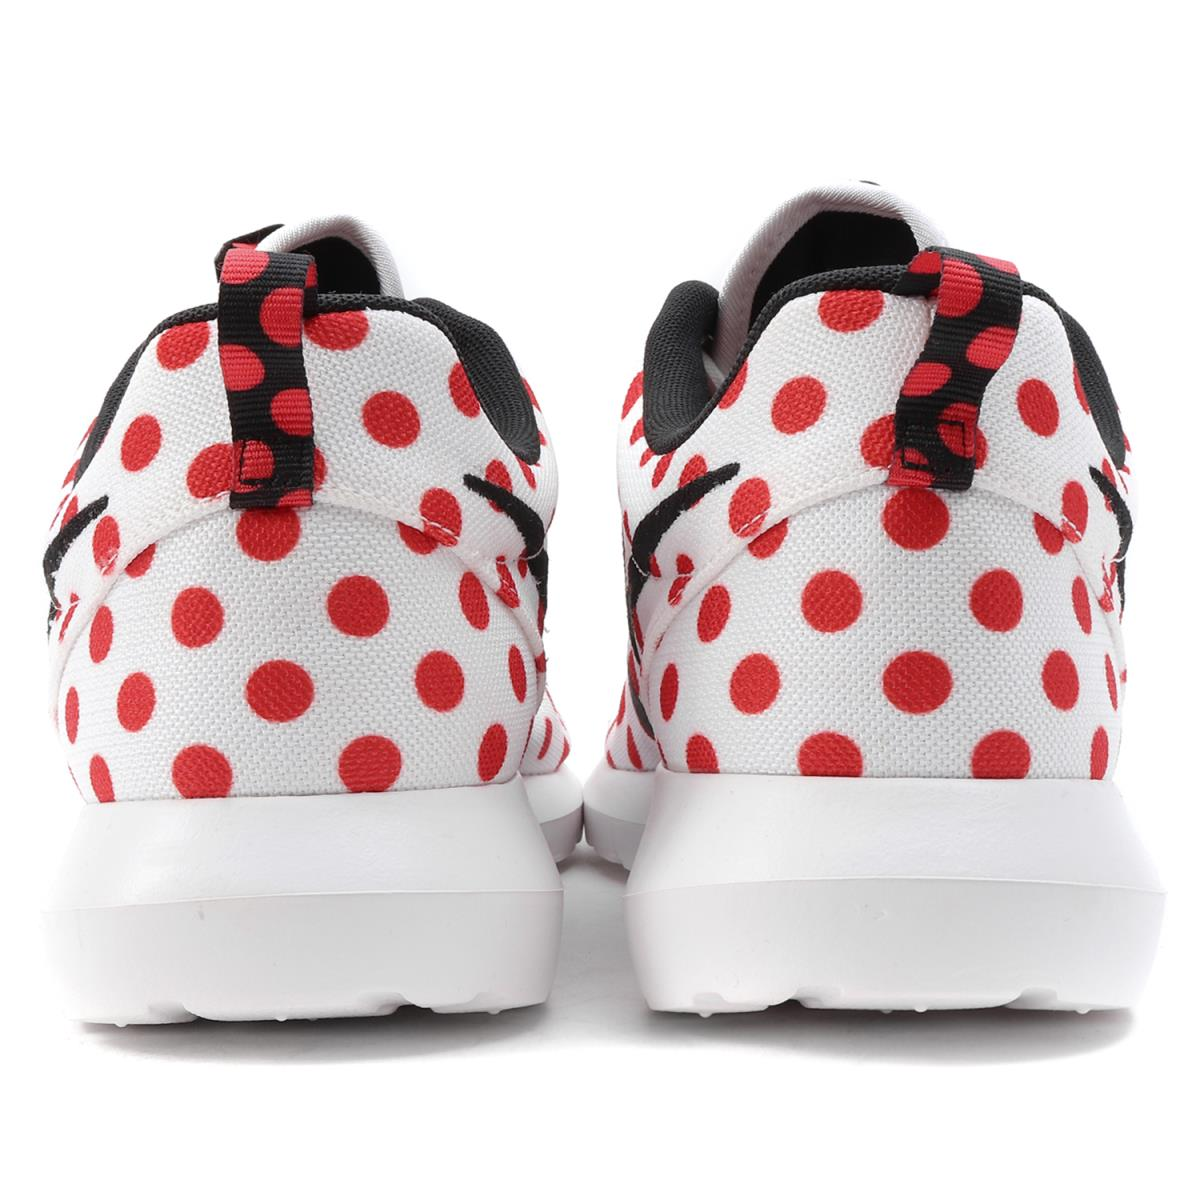 new product 2e26a eef6e ... NIKE (Nike) ROSHE RUN NM QS POLKA DOT PACK (810,857-106) ...